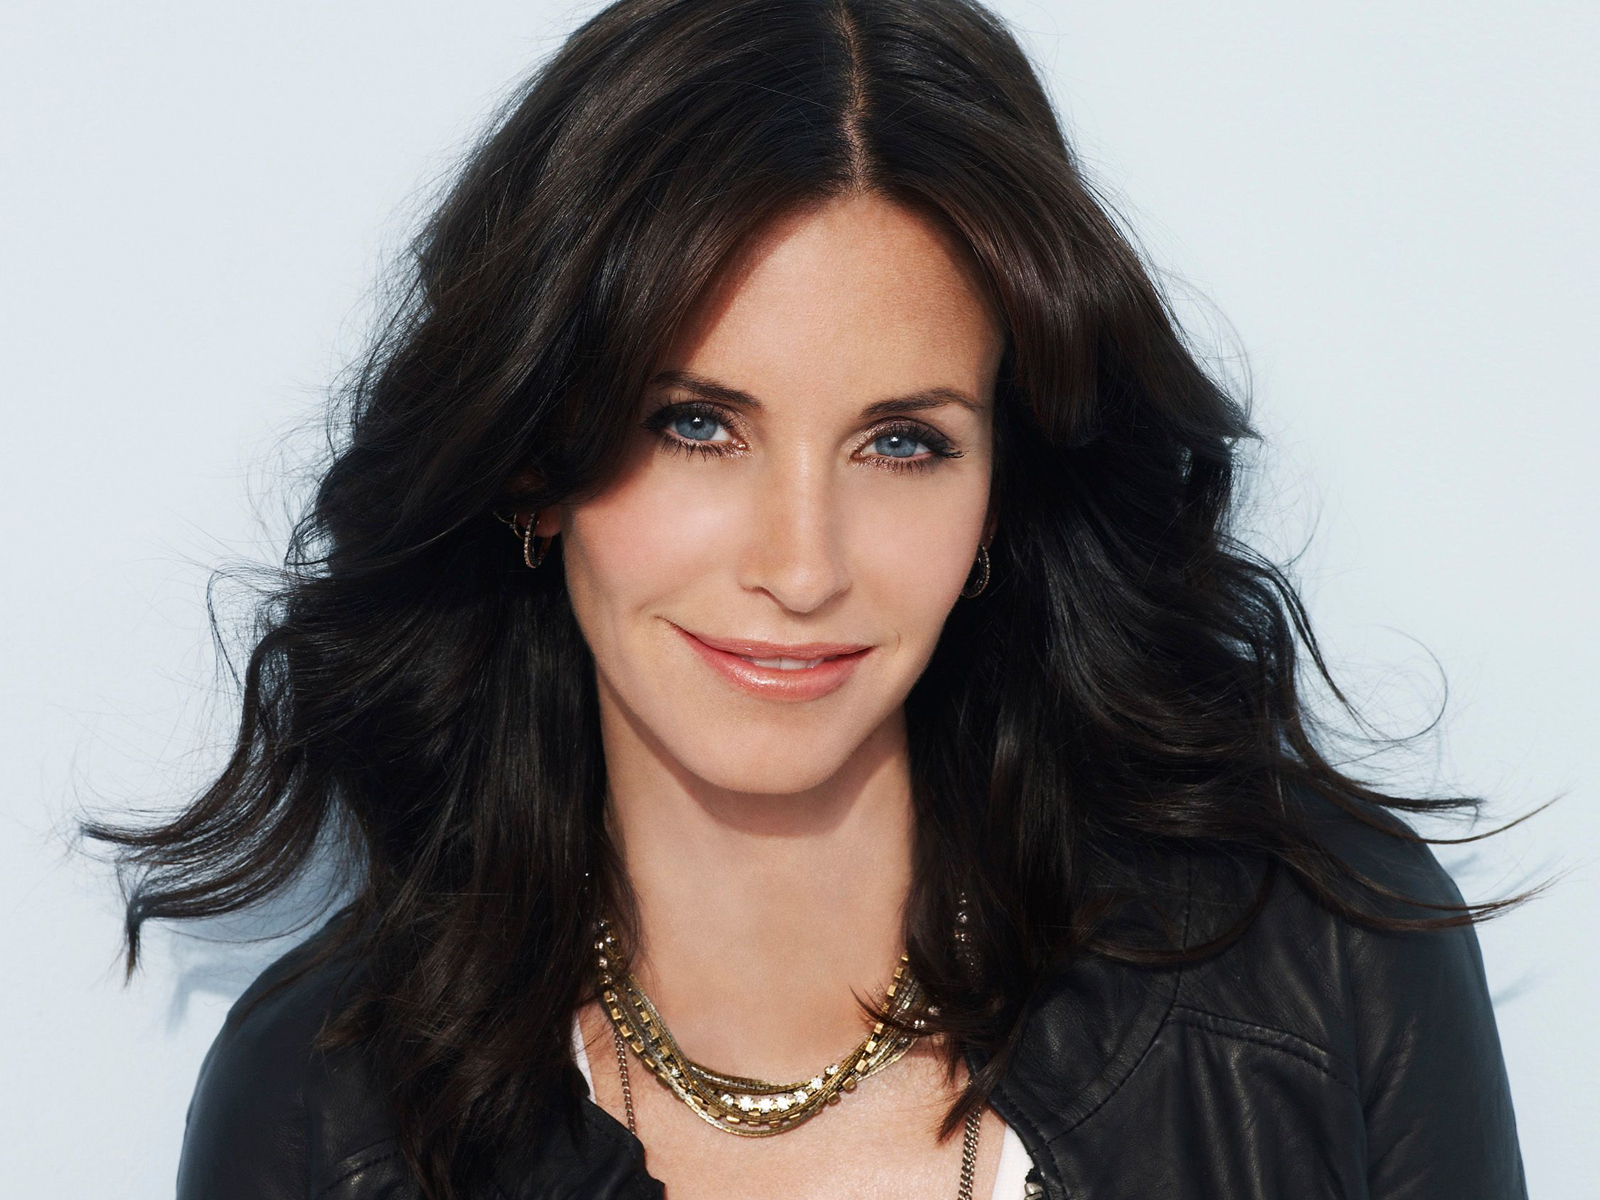 HQ Courteney Cox Wallpapers | File 1000.05Kb